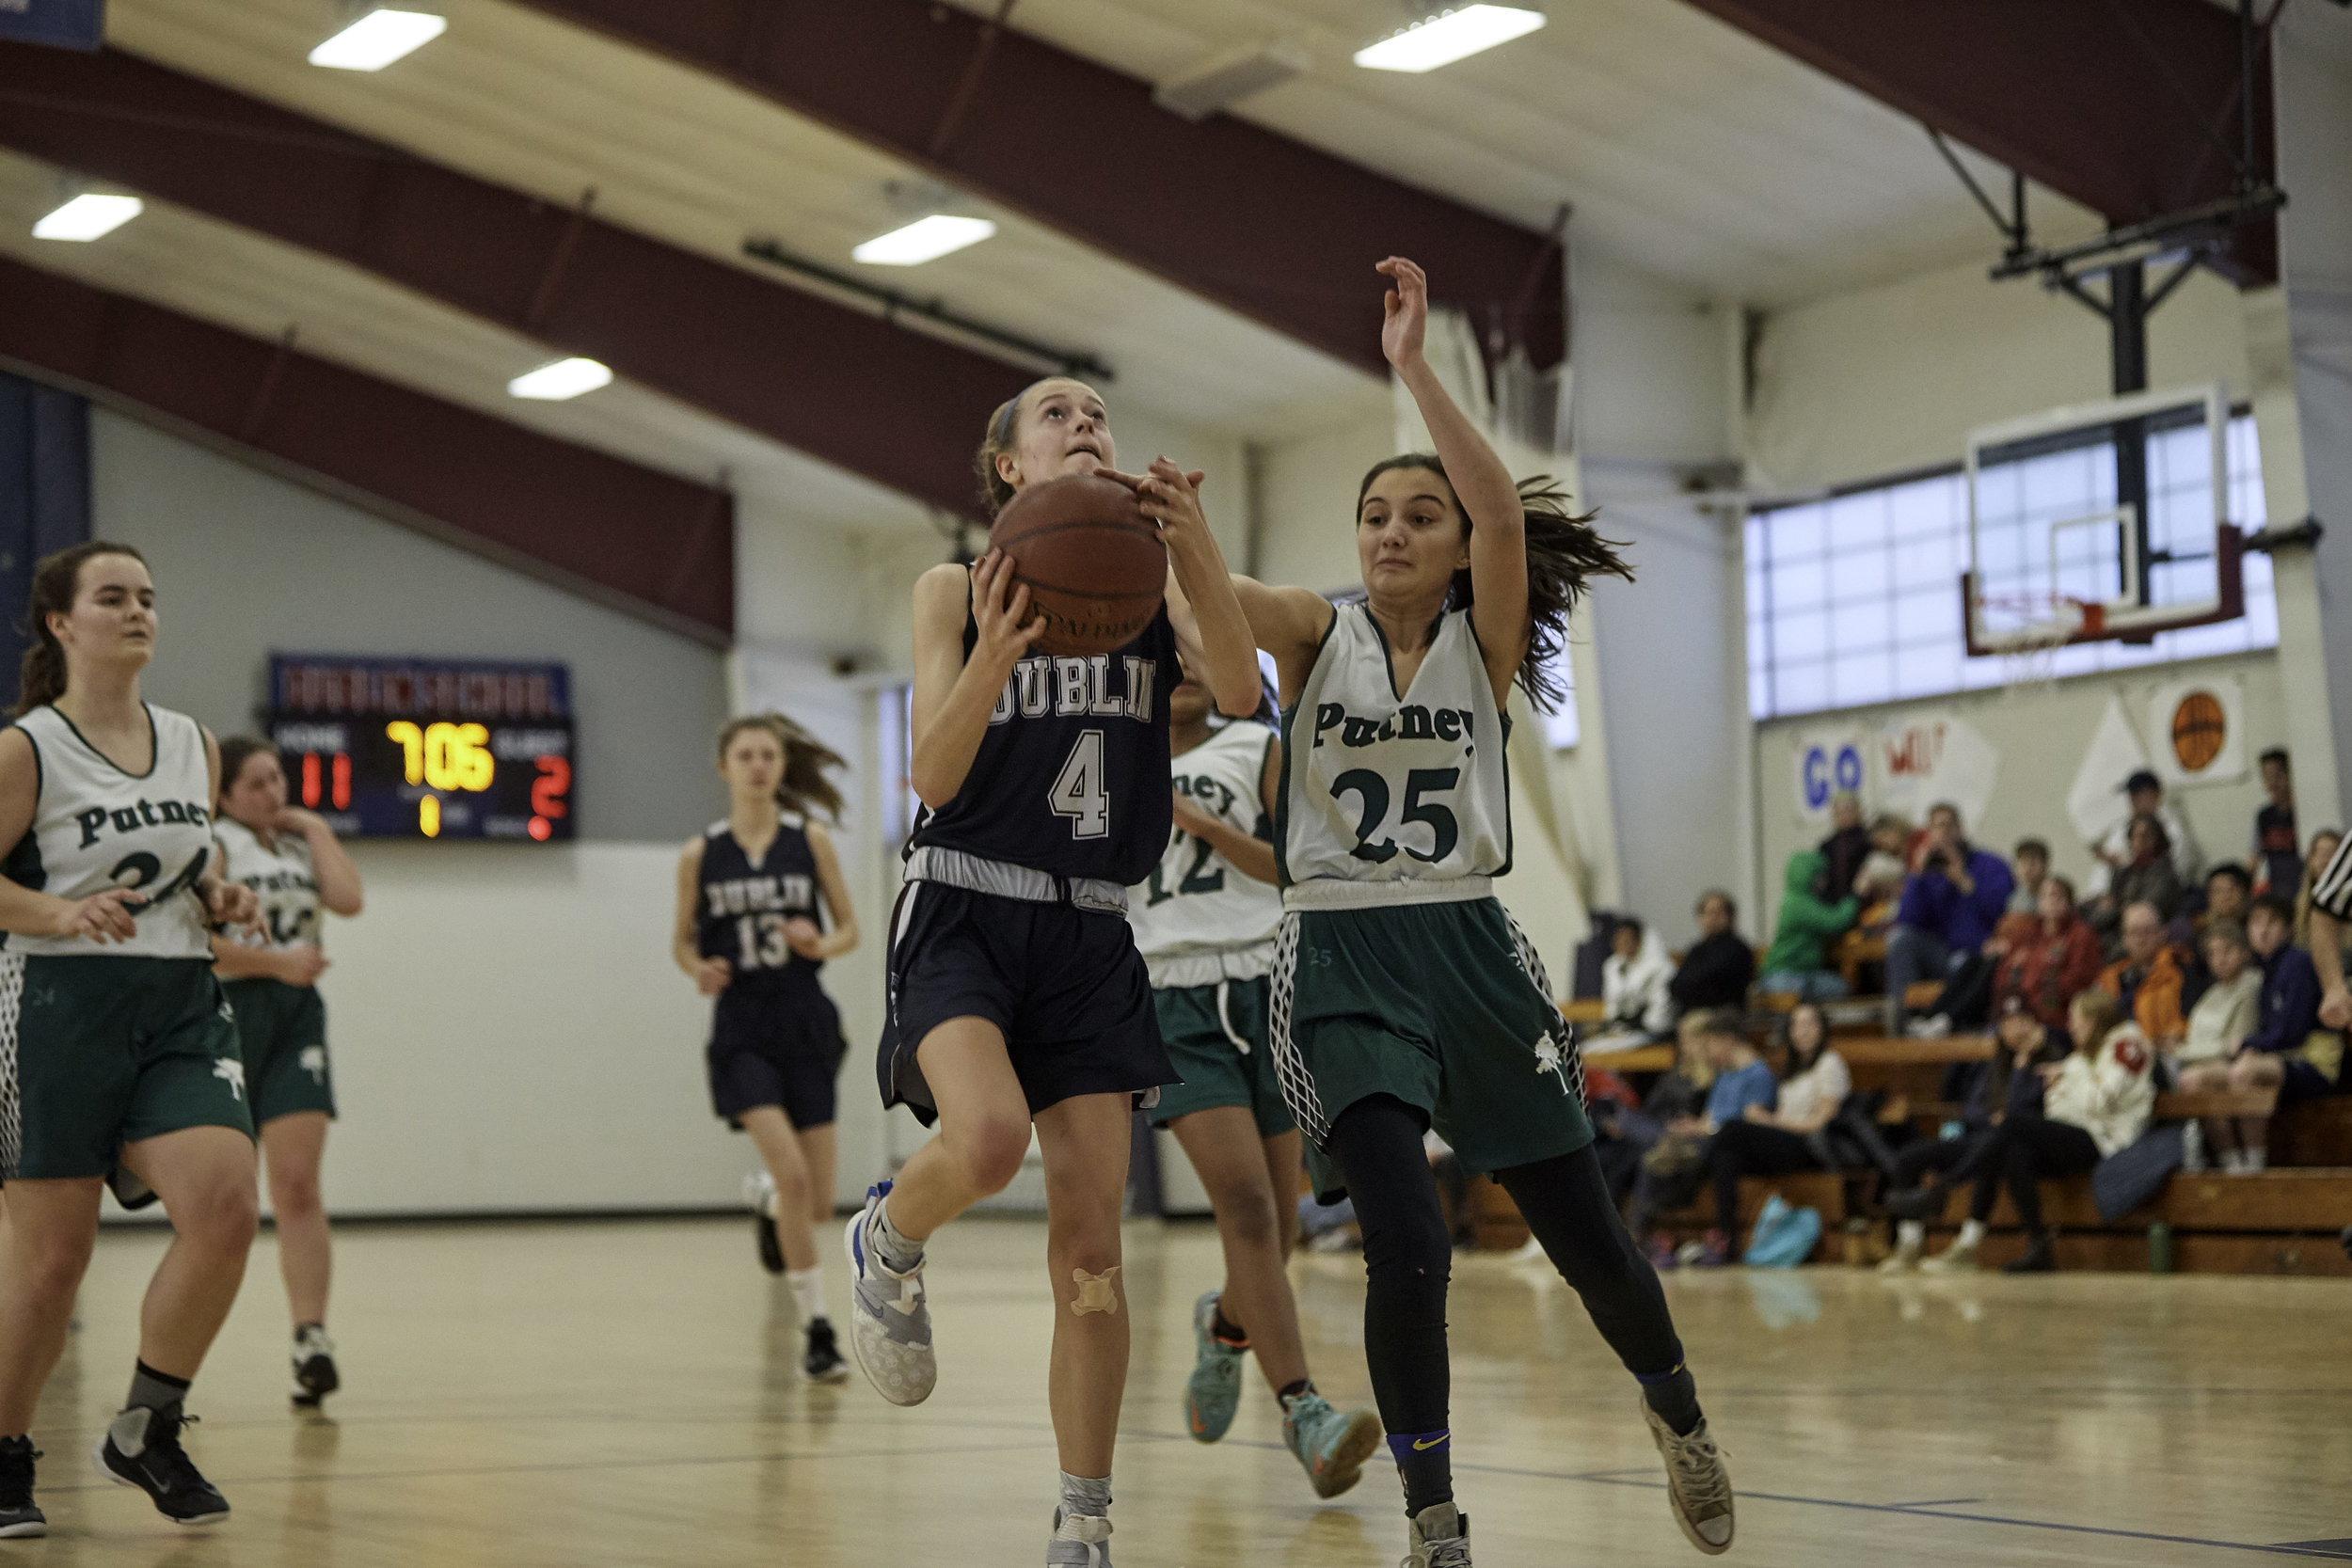 Basketball vs Putney School, February 9, 2019 - 167251.jpg